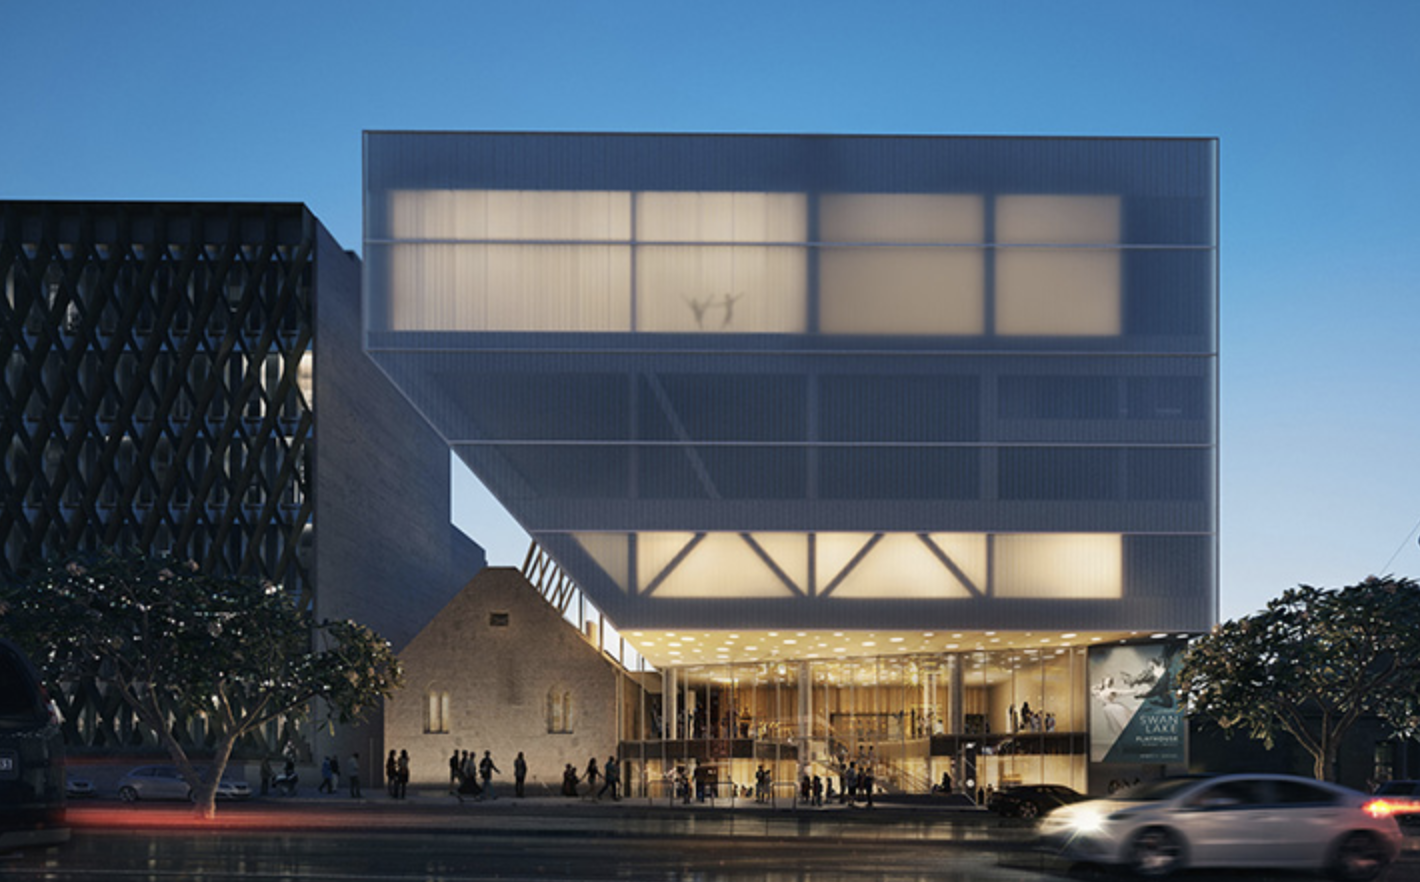 The Geelong Performing Arts Centre (GPAC) by Hassell Design Team